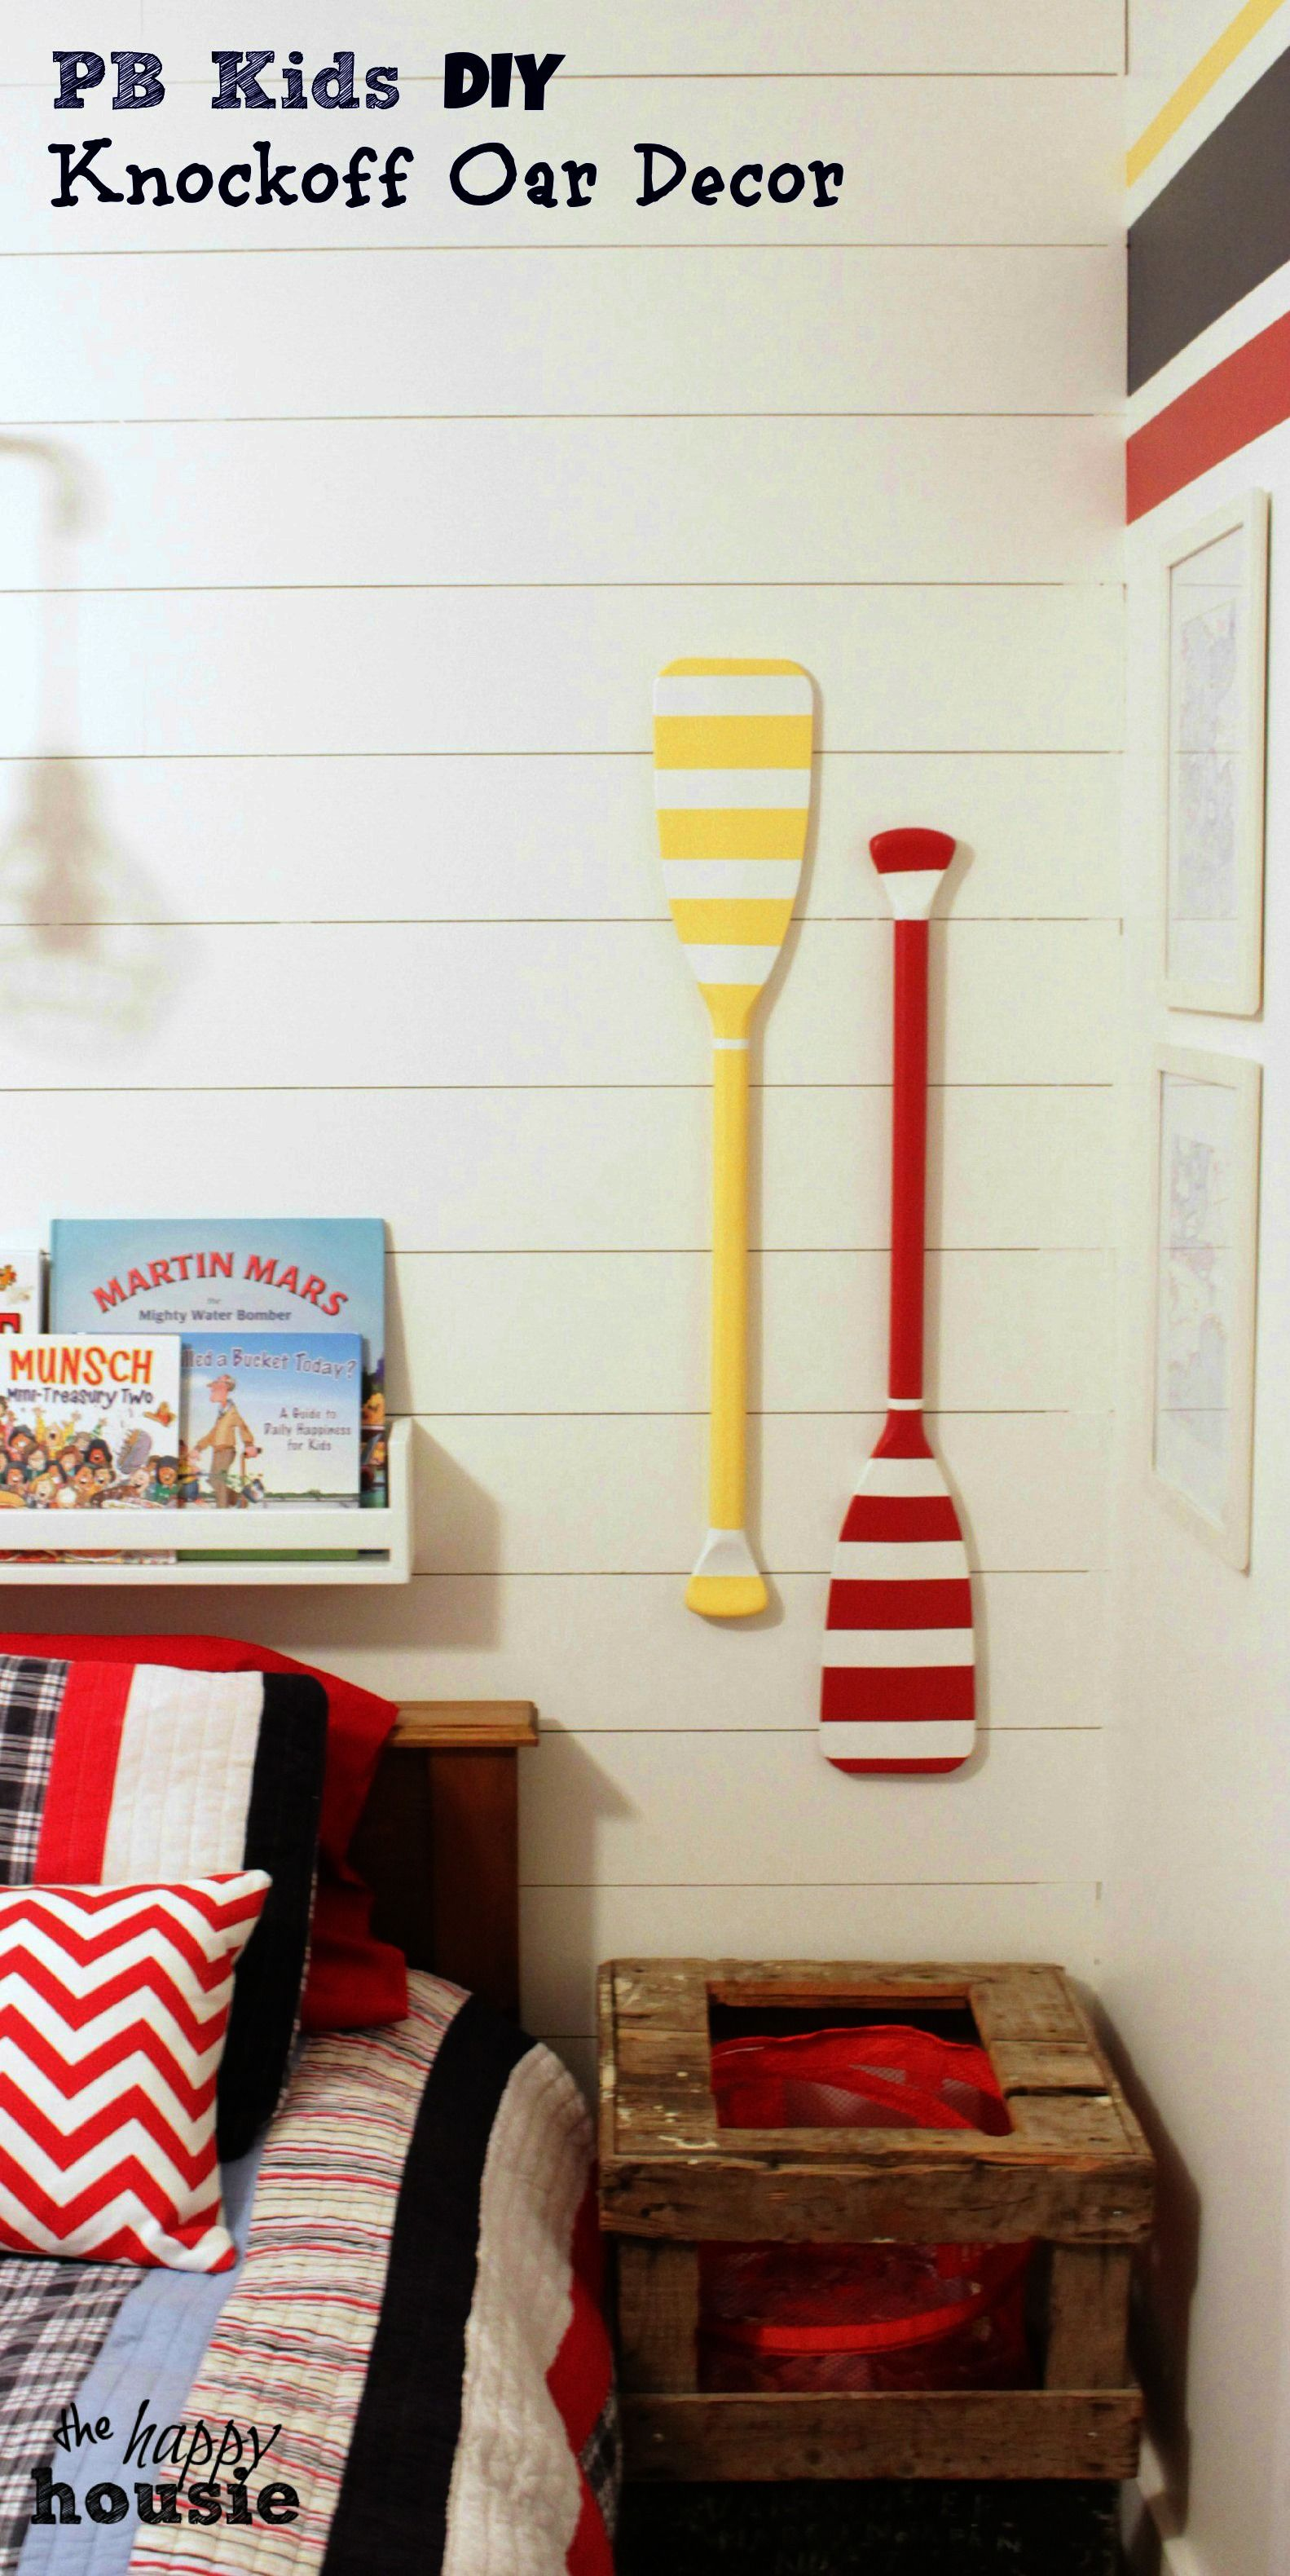 Pottery barn kids knockoff oar decor for the boys bedroom at happy housie also southern revivals tutorial diy boat wall with rh pinterest